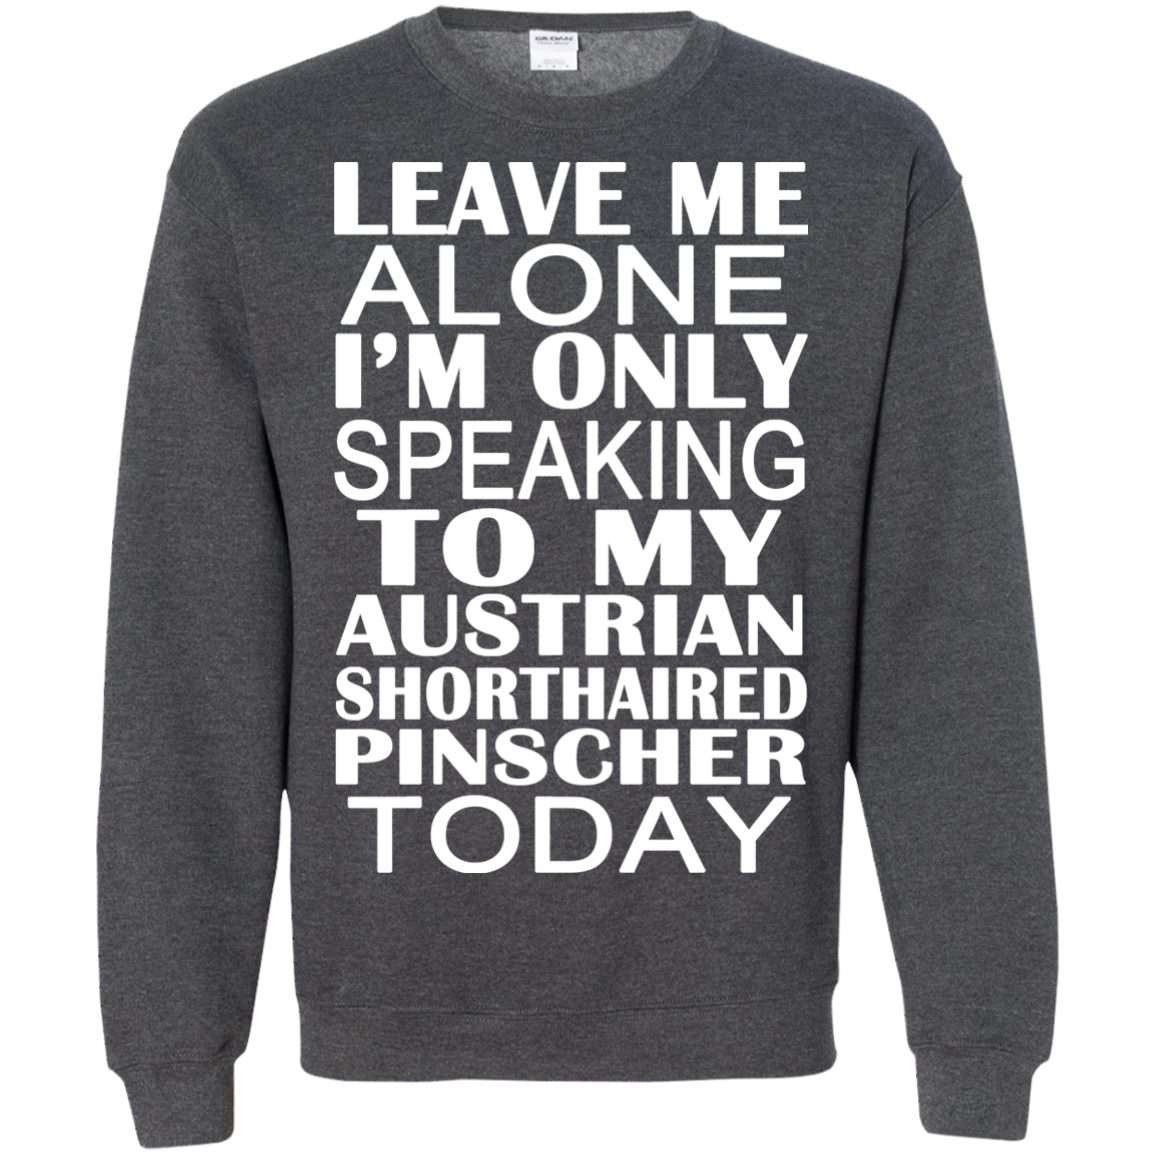 Leave Me Alone Im Only Speaking To My Australian Shorthaired Pinscher Today Sweatshirts